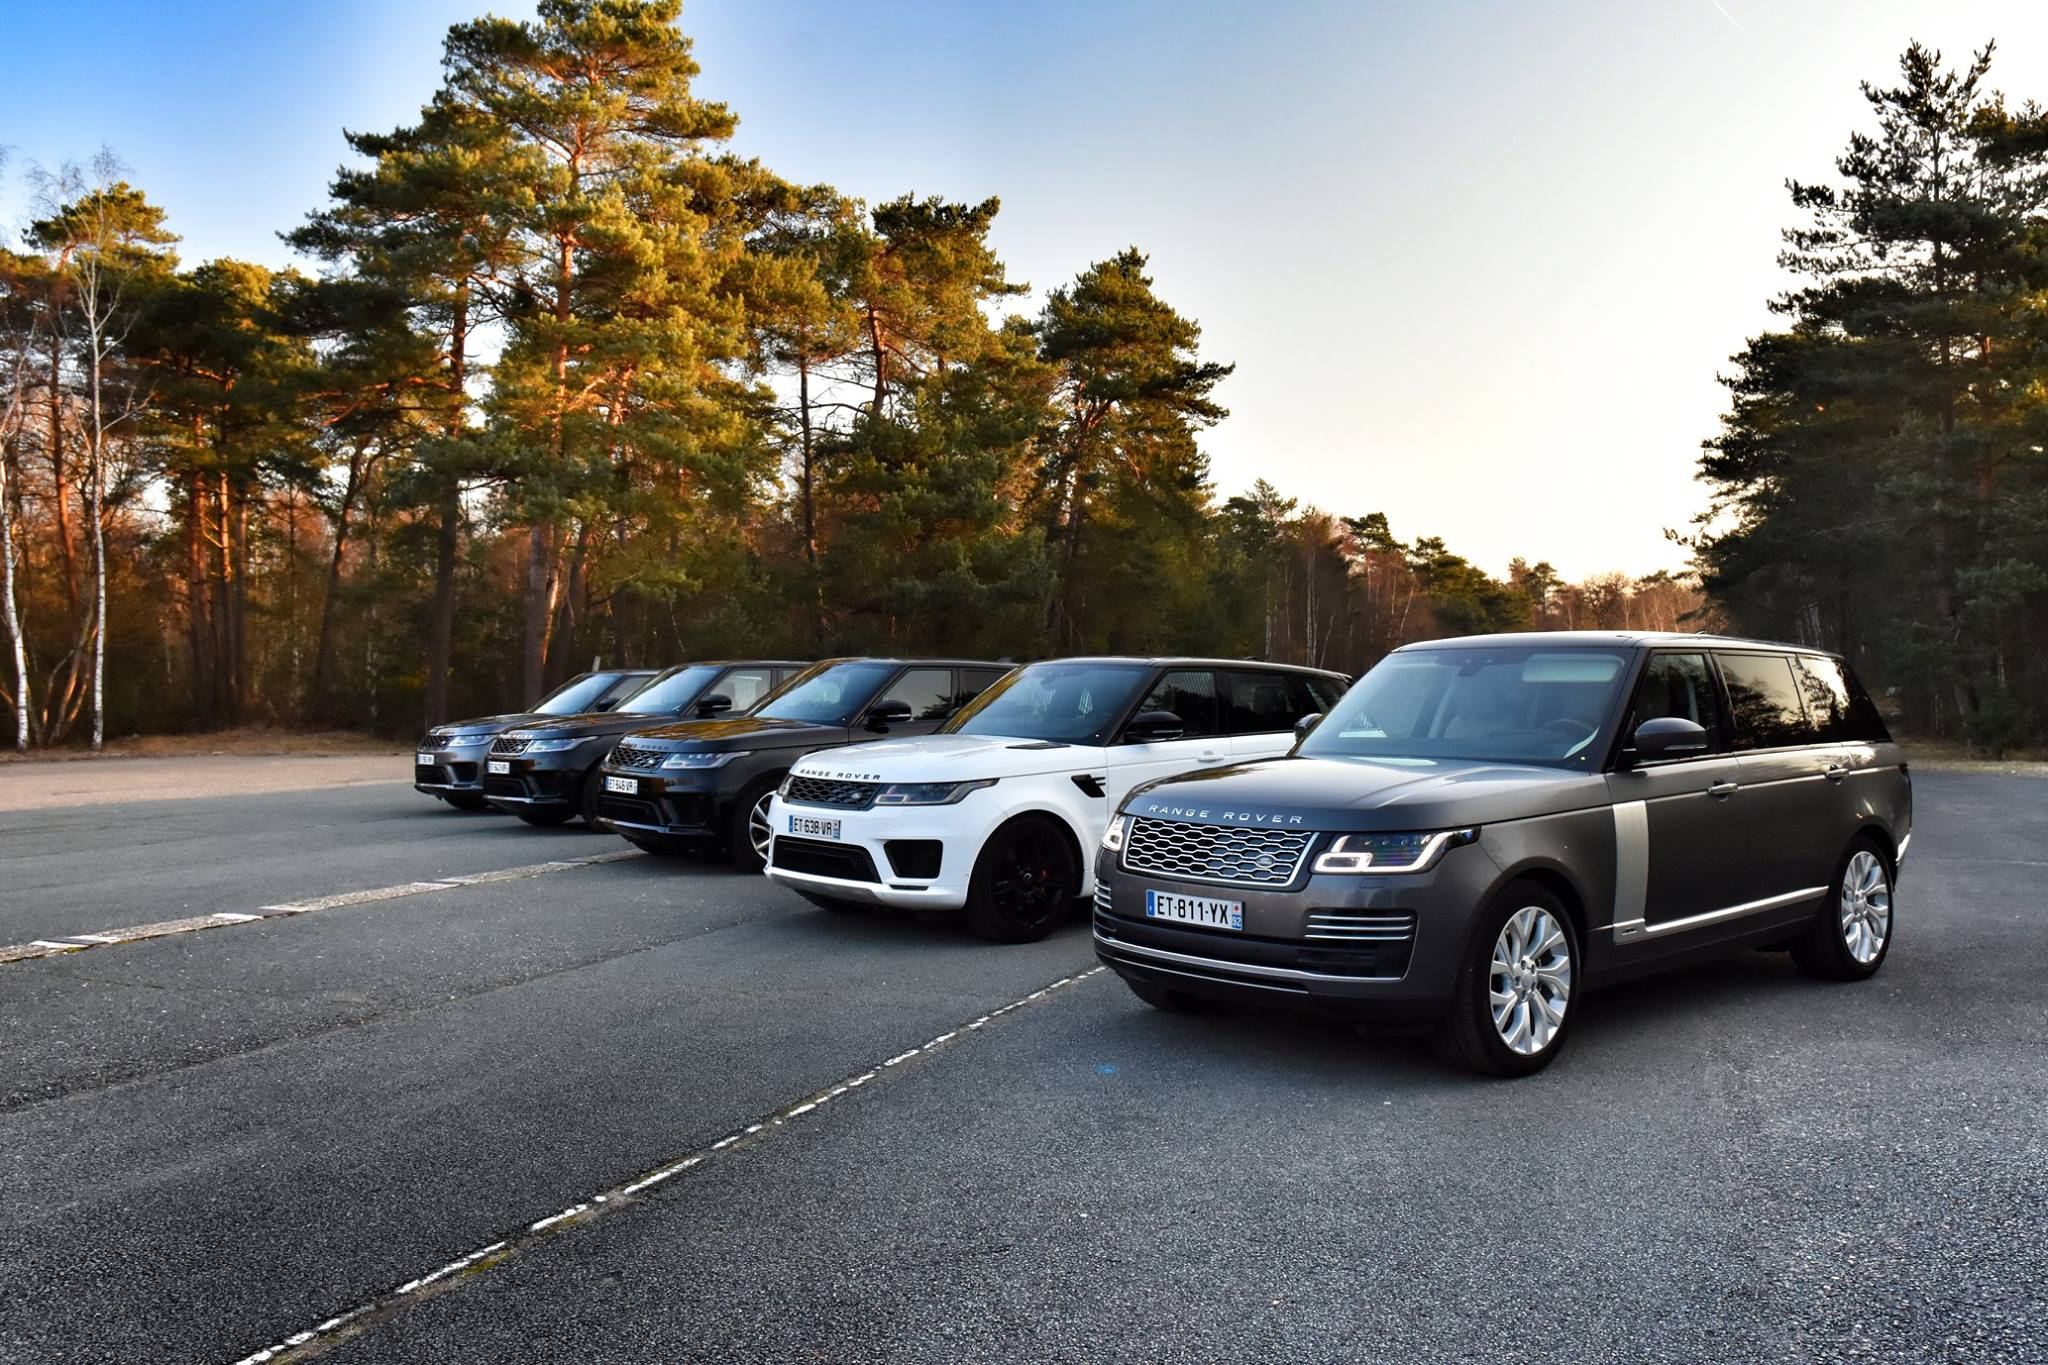 [FORMATION] Range Rover Sport PHEV @ Mortefontaine